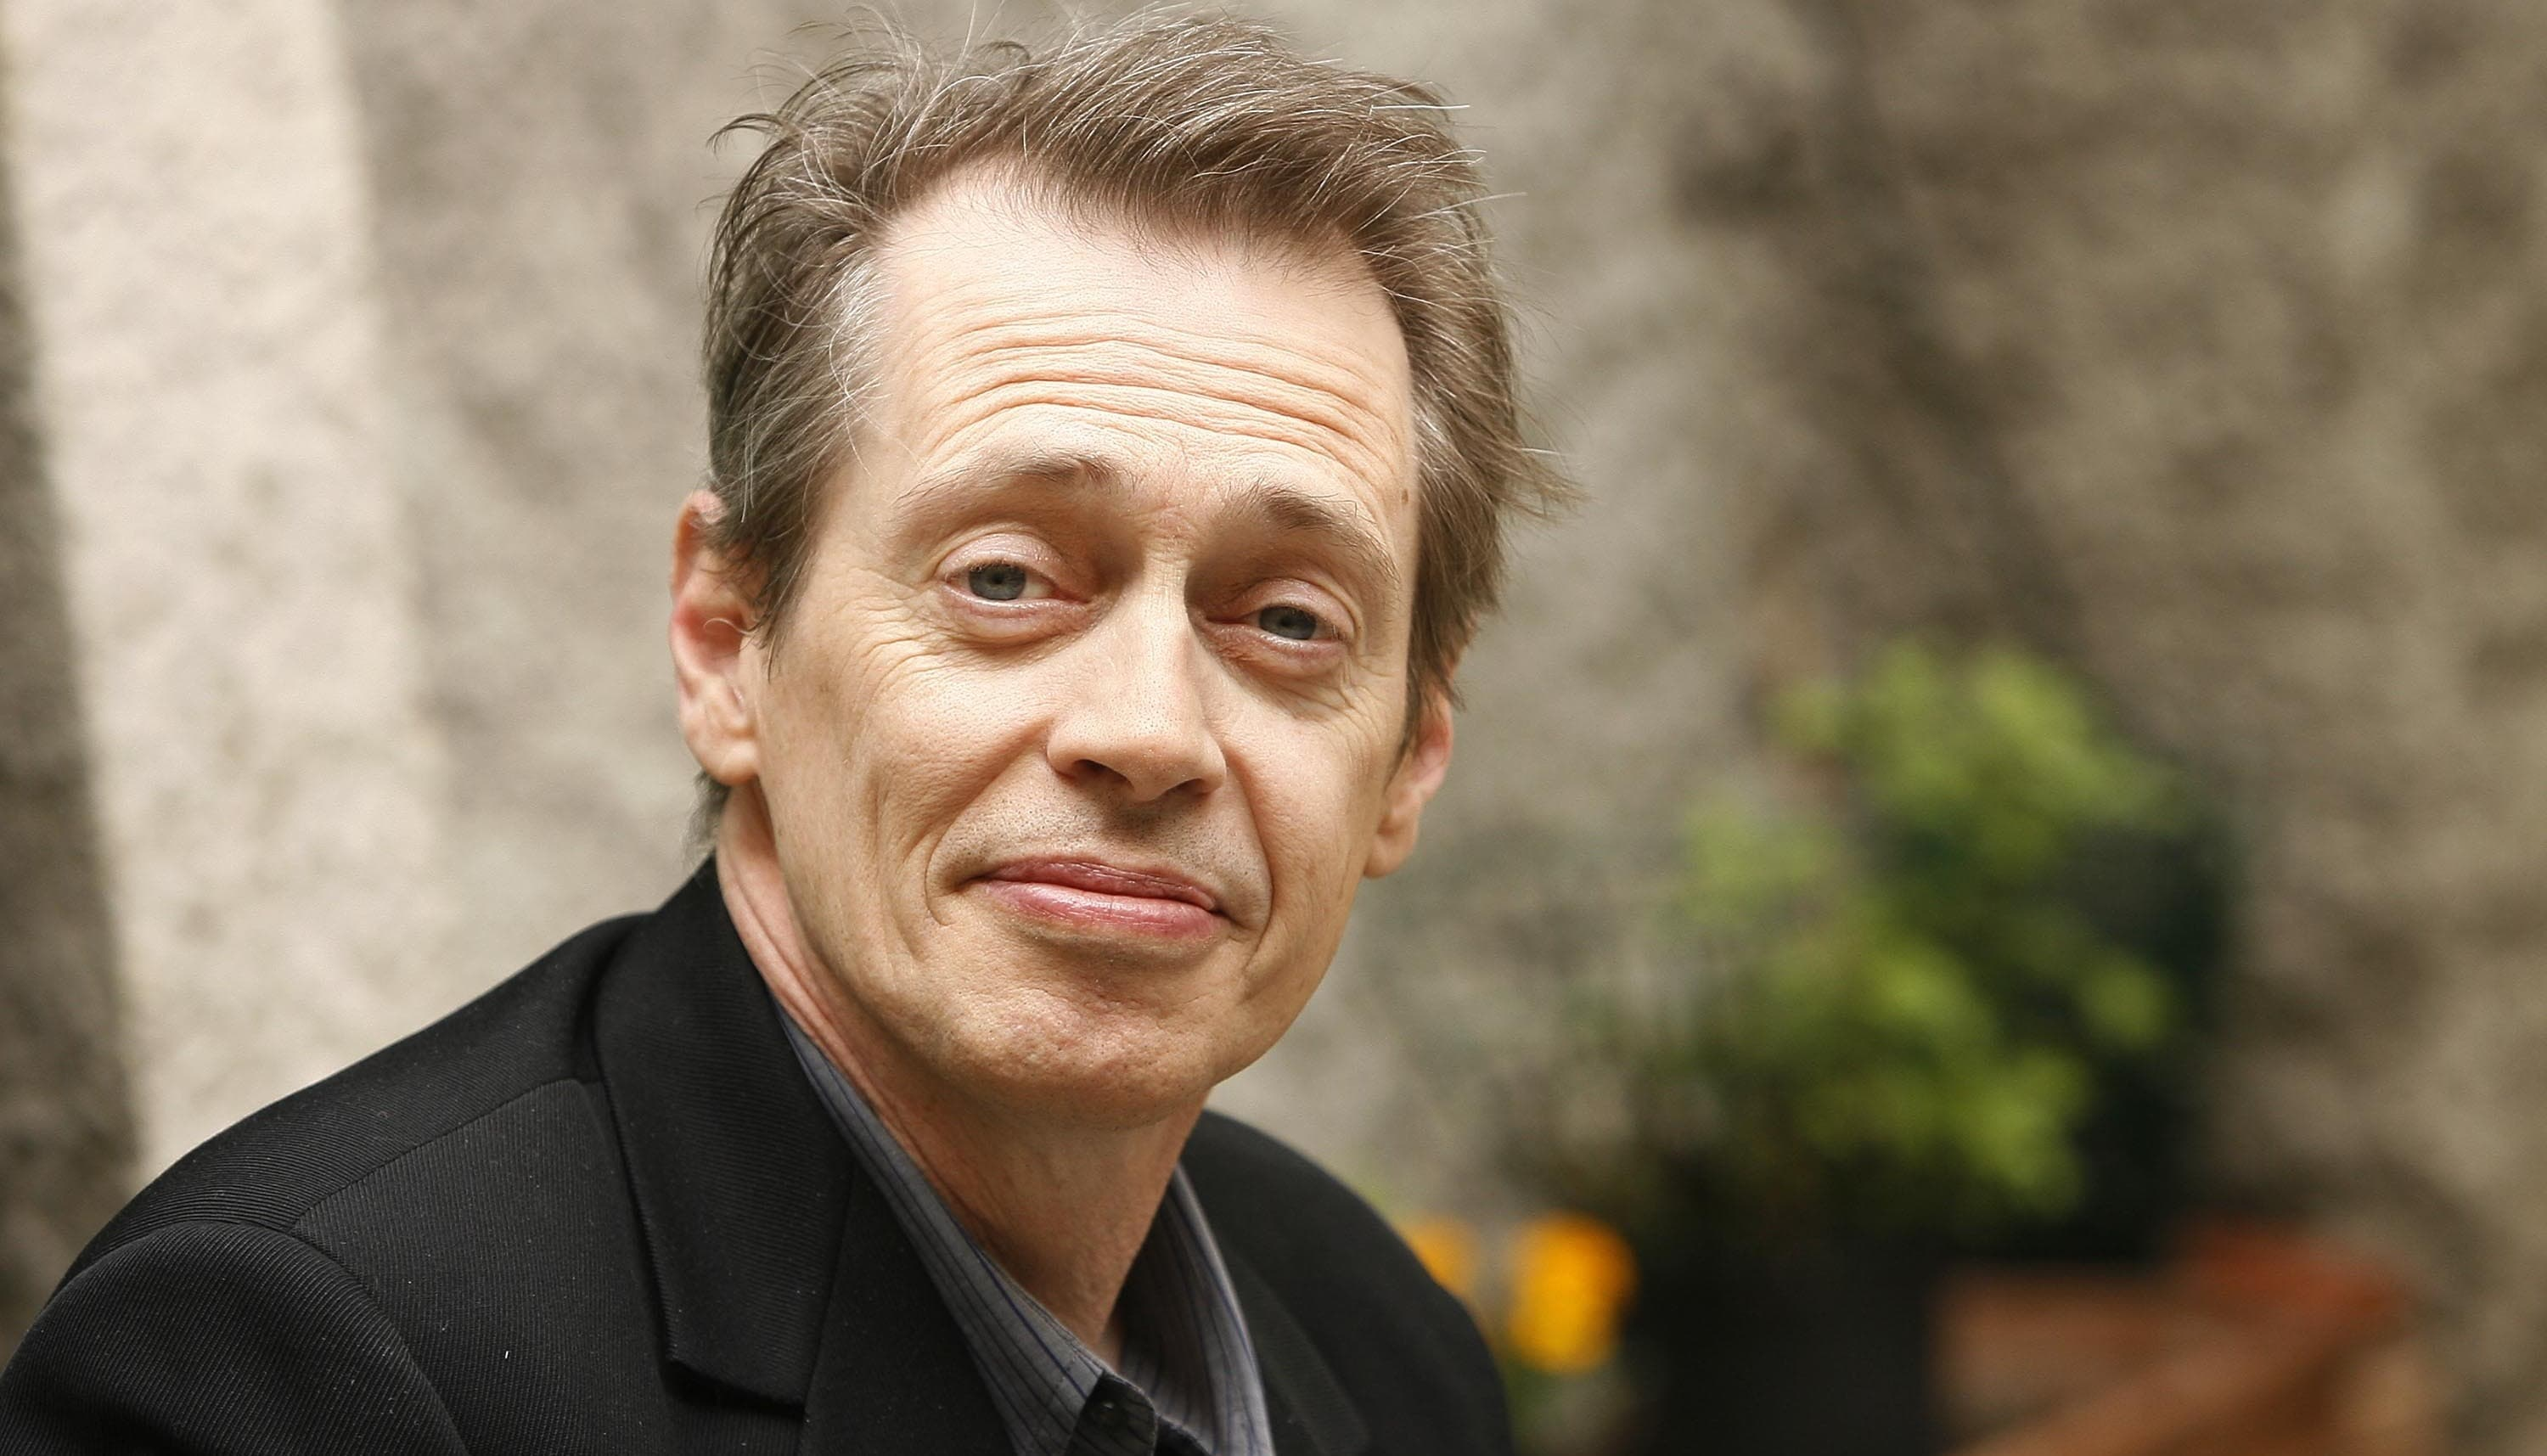 Steve Buscemi Wallpapers Desktop 3000x1715 WallpapersExpertcom 3000x1715